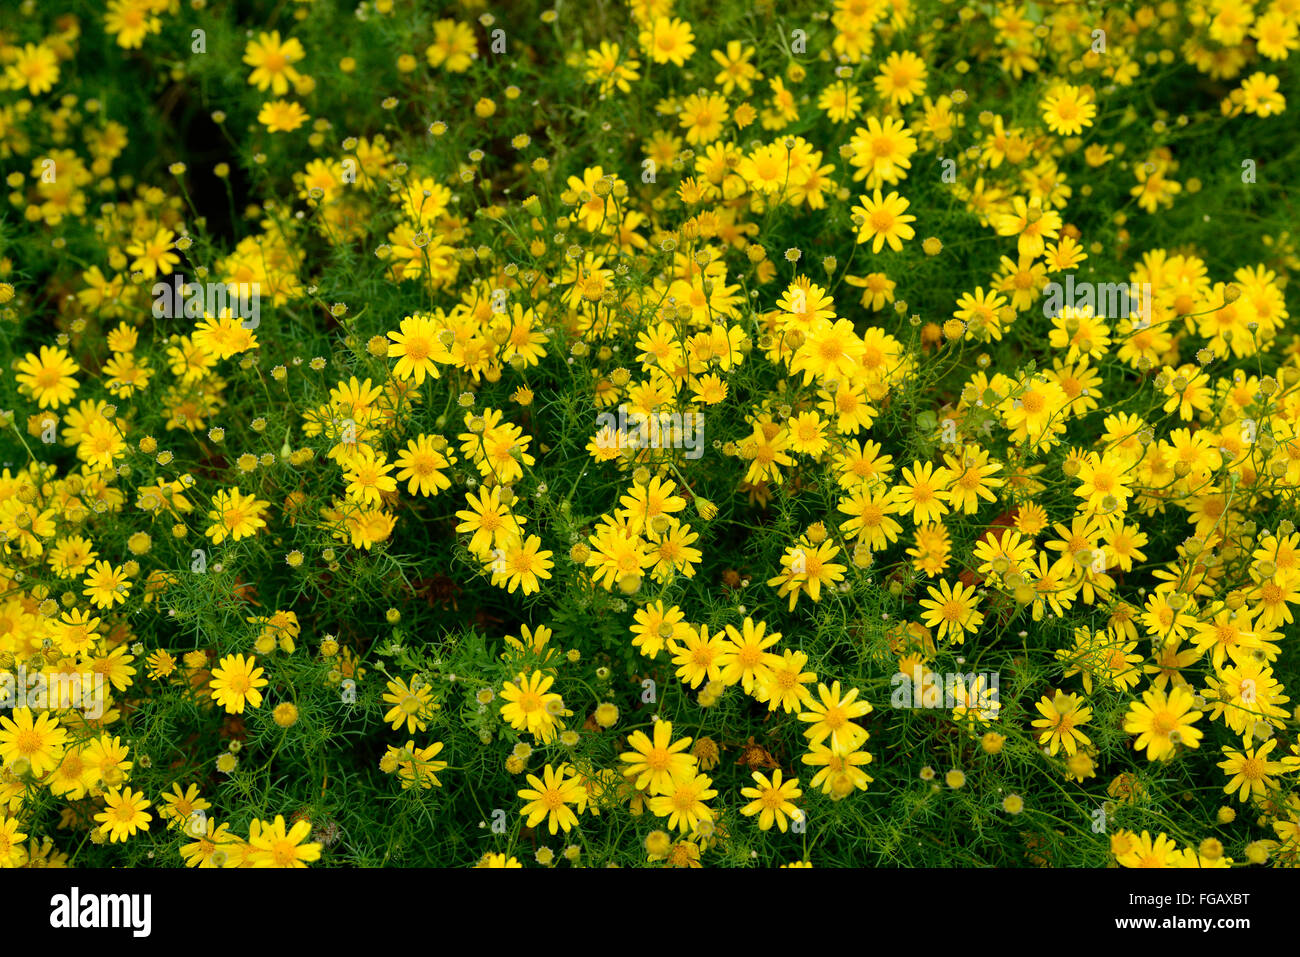 Thymophylla tenuiloba dahlberg daisy yellow flowers flower flowering thymophylla tenuiloba dahlberg daisy yellow flowers flower flowering annual annuals garden plant plants bedding rm floral mightylinksfo